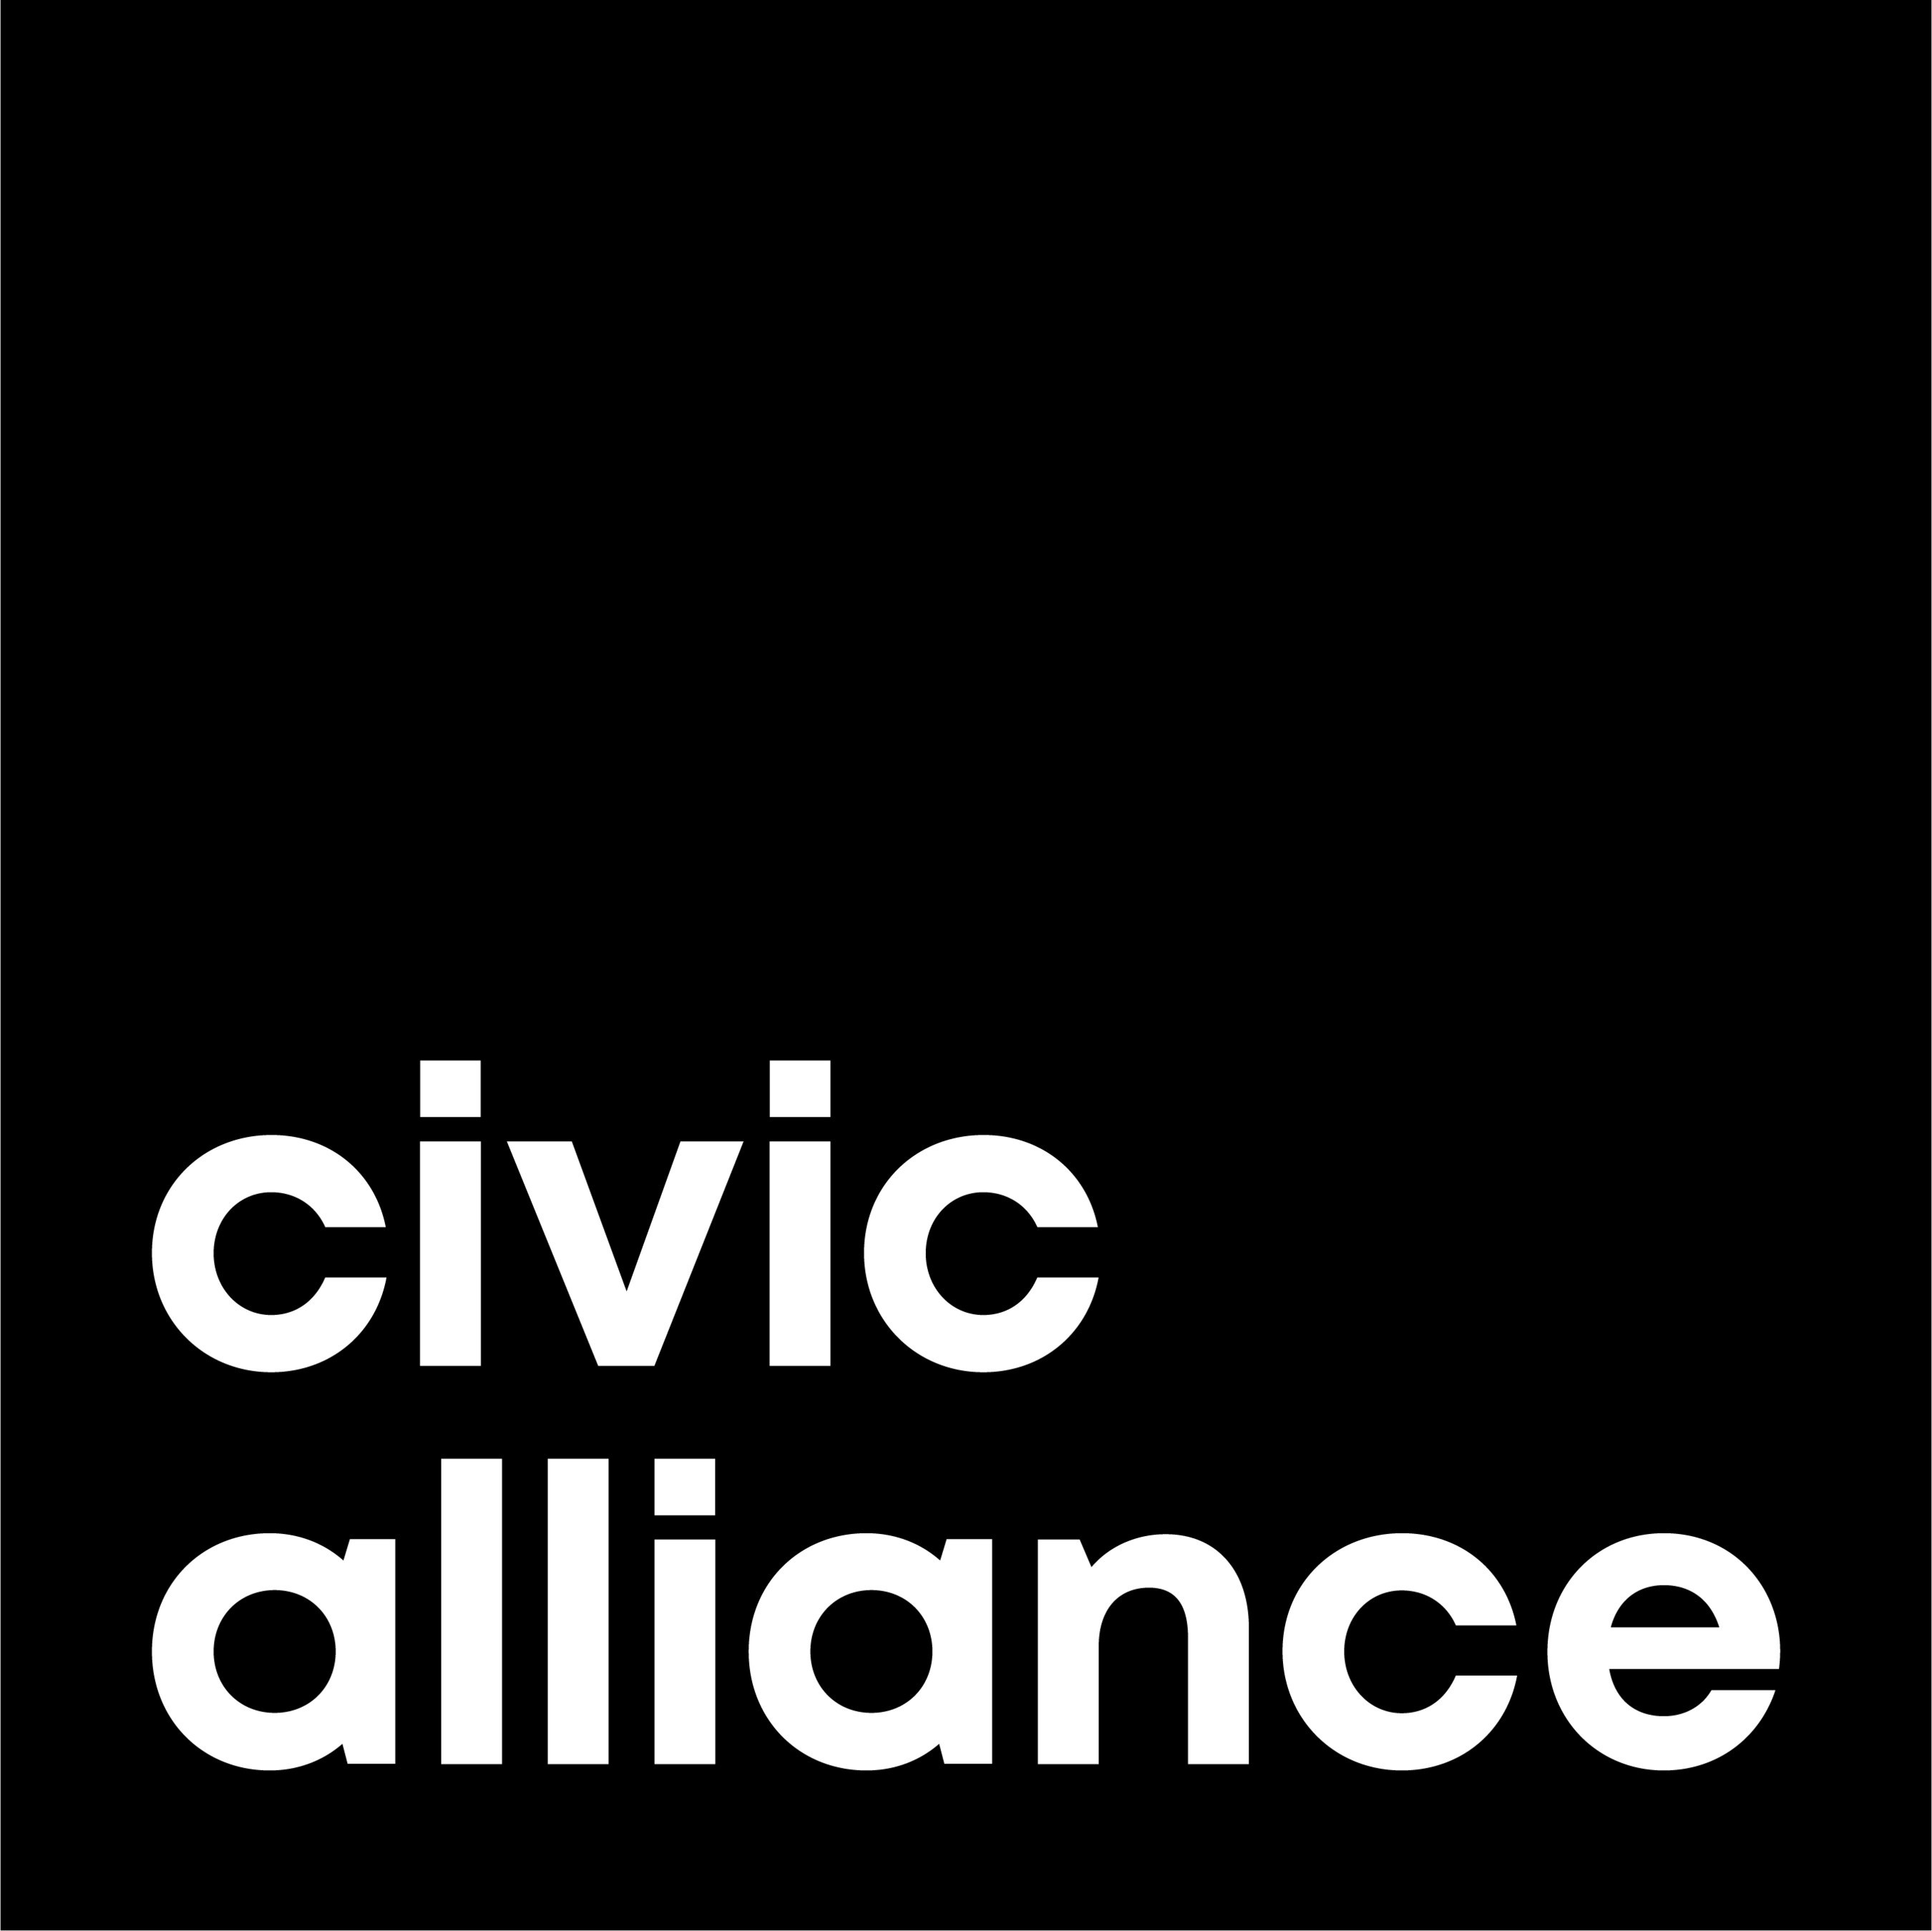 Civic_Alliance